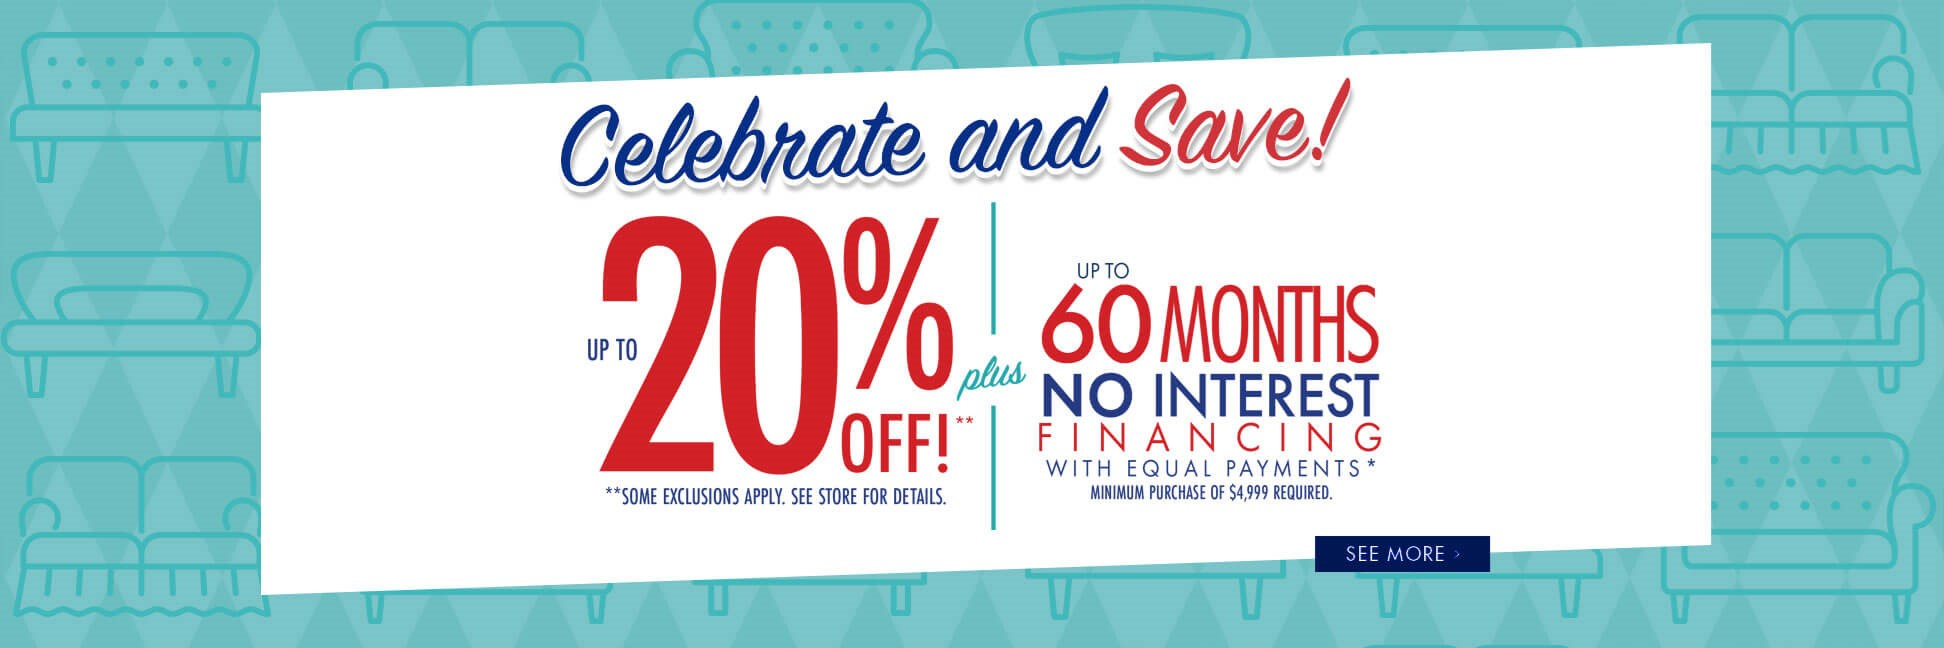 Celebrate and Save!